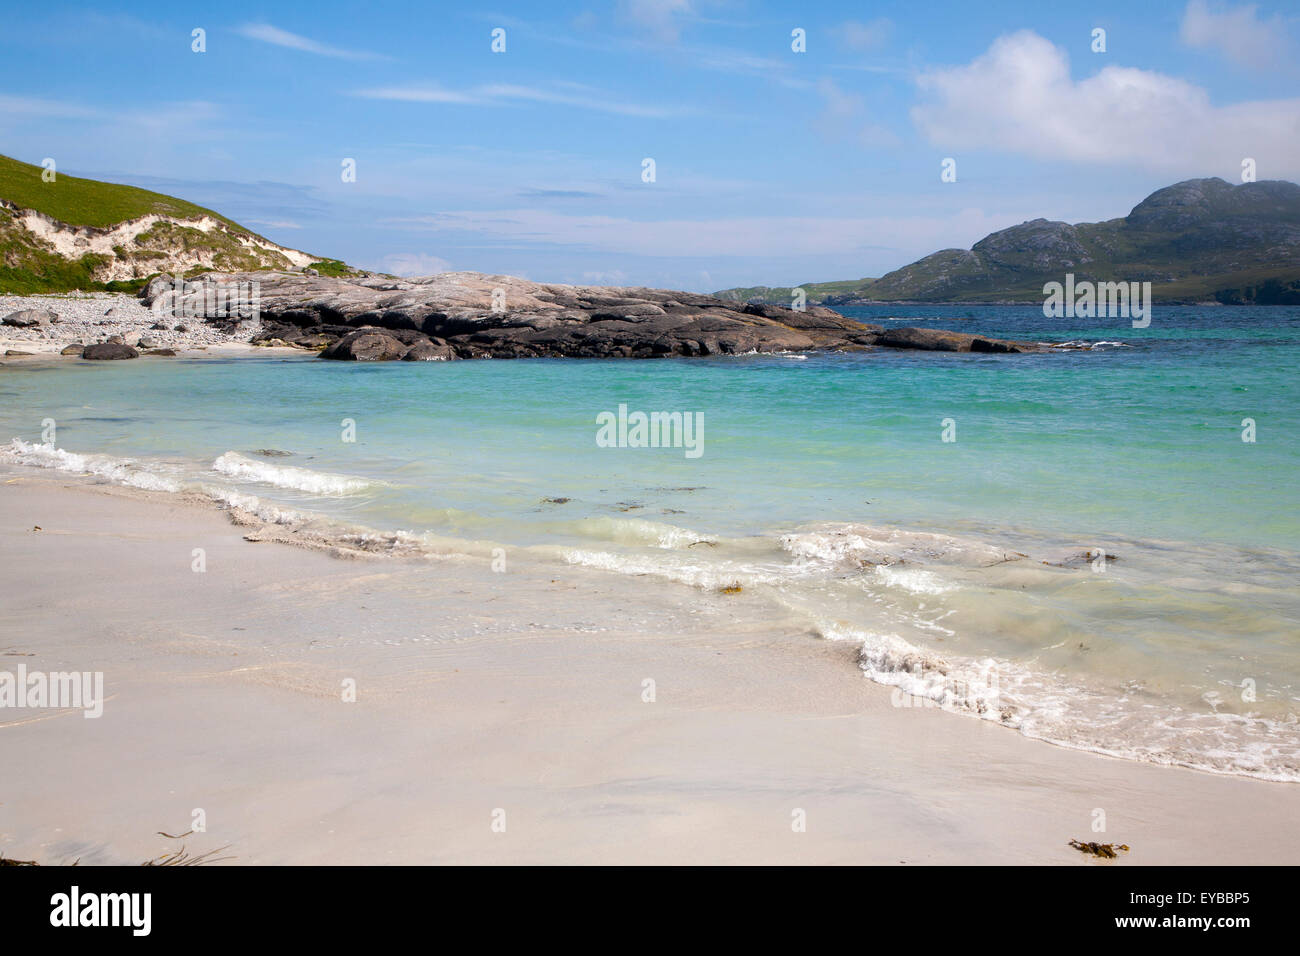 Sandy beach at Bagh a Deas, South Bay, Vatersay island, Barra, Outer Hebrides, Scotland, UK - Stock Image